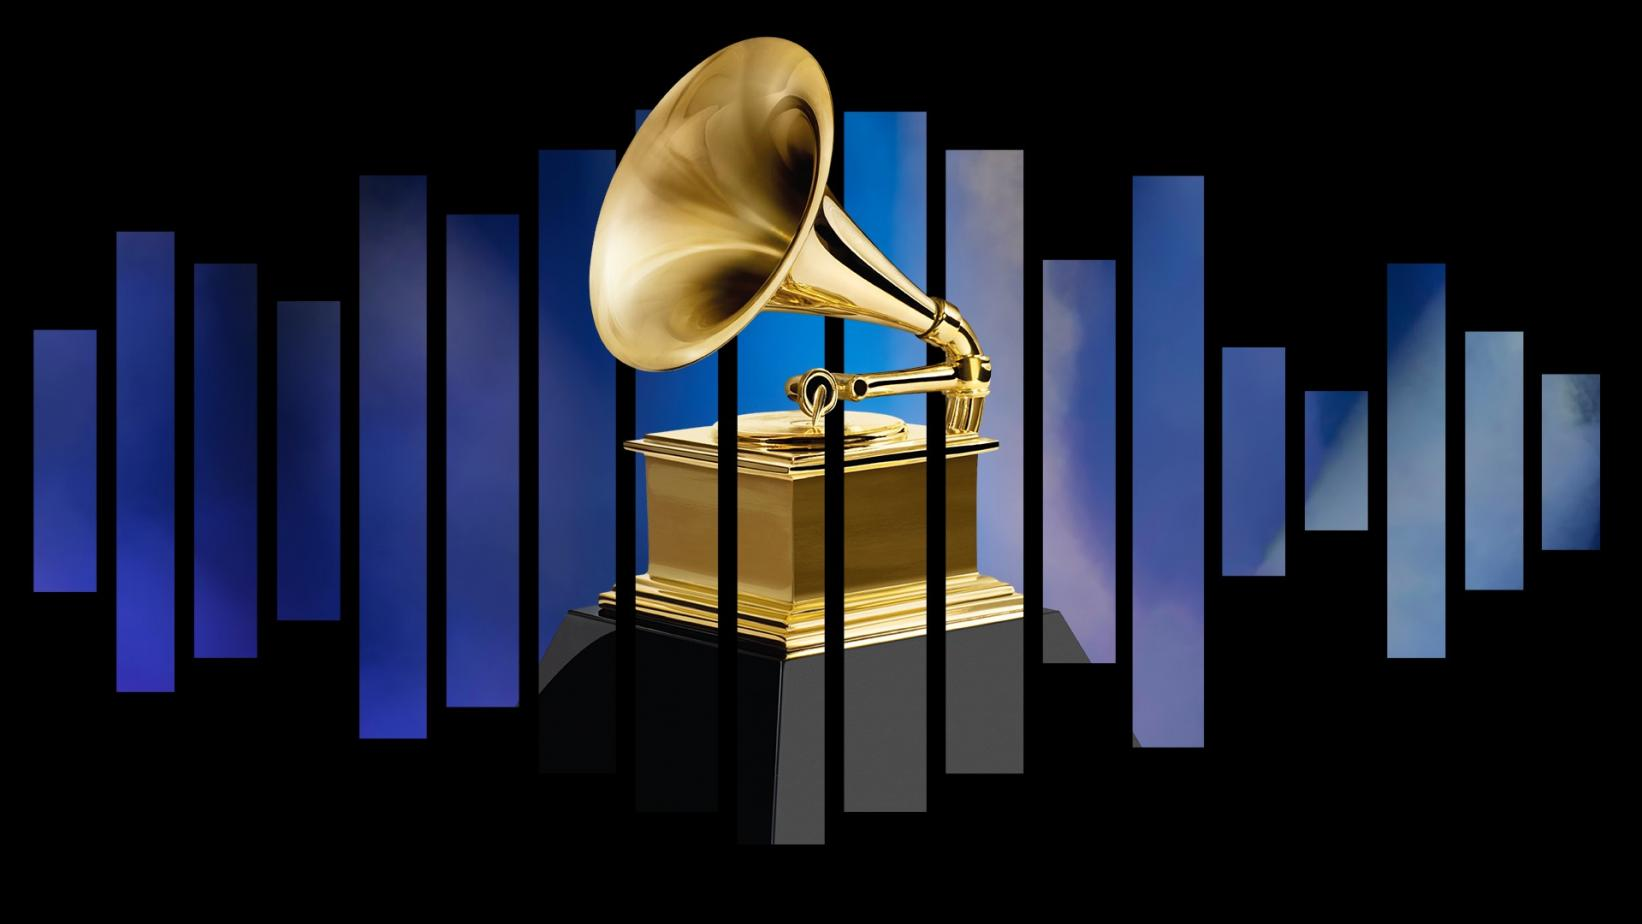 This year's Grammy Awards had a big surprise for everyone.(Image: Grammy Awards)